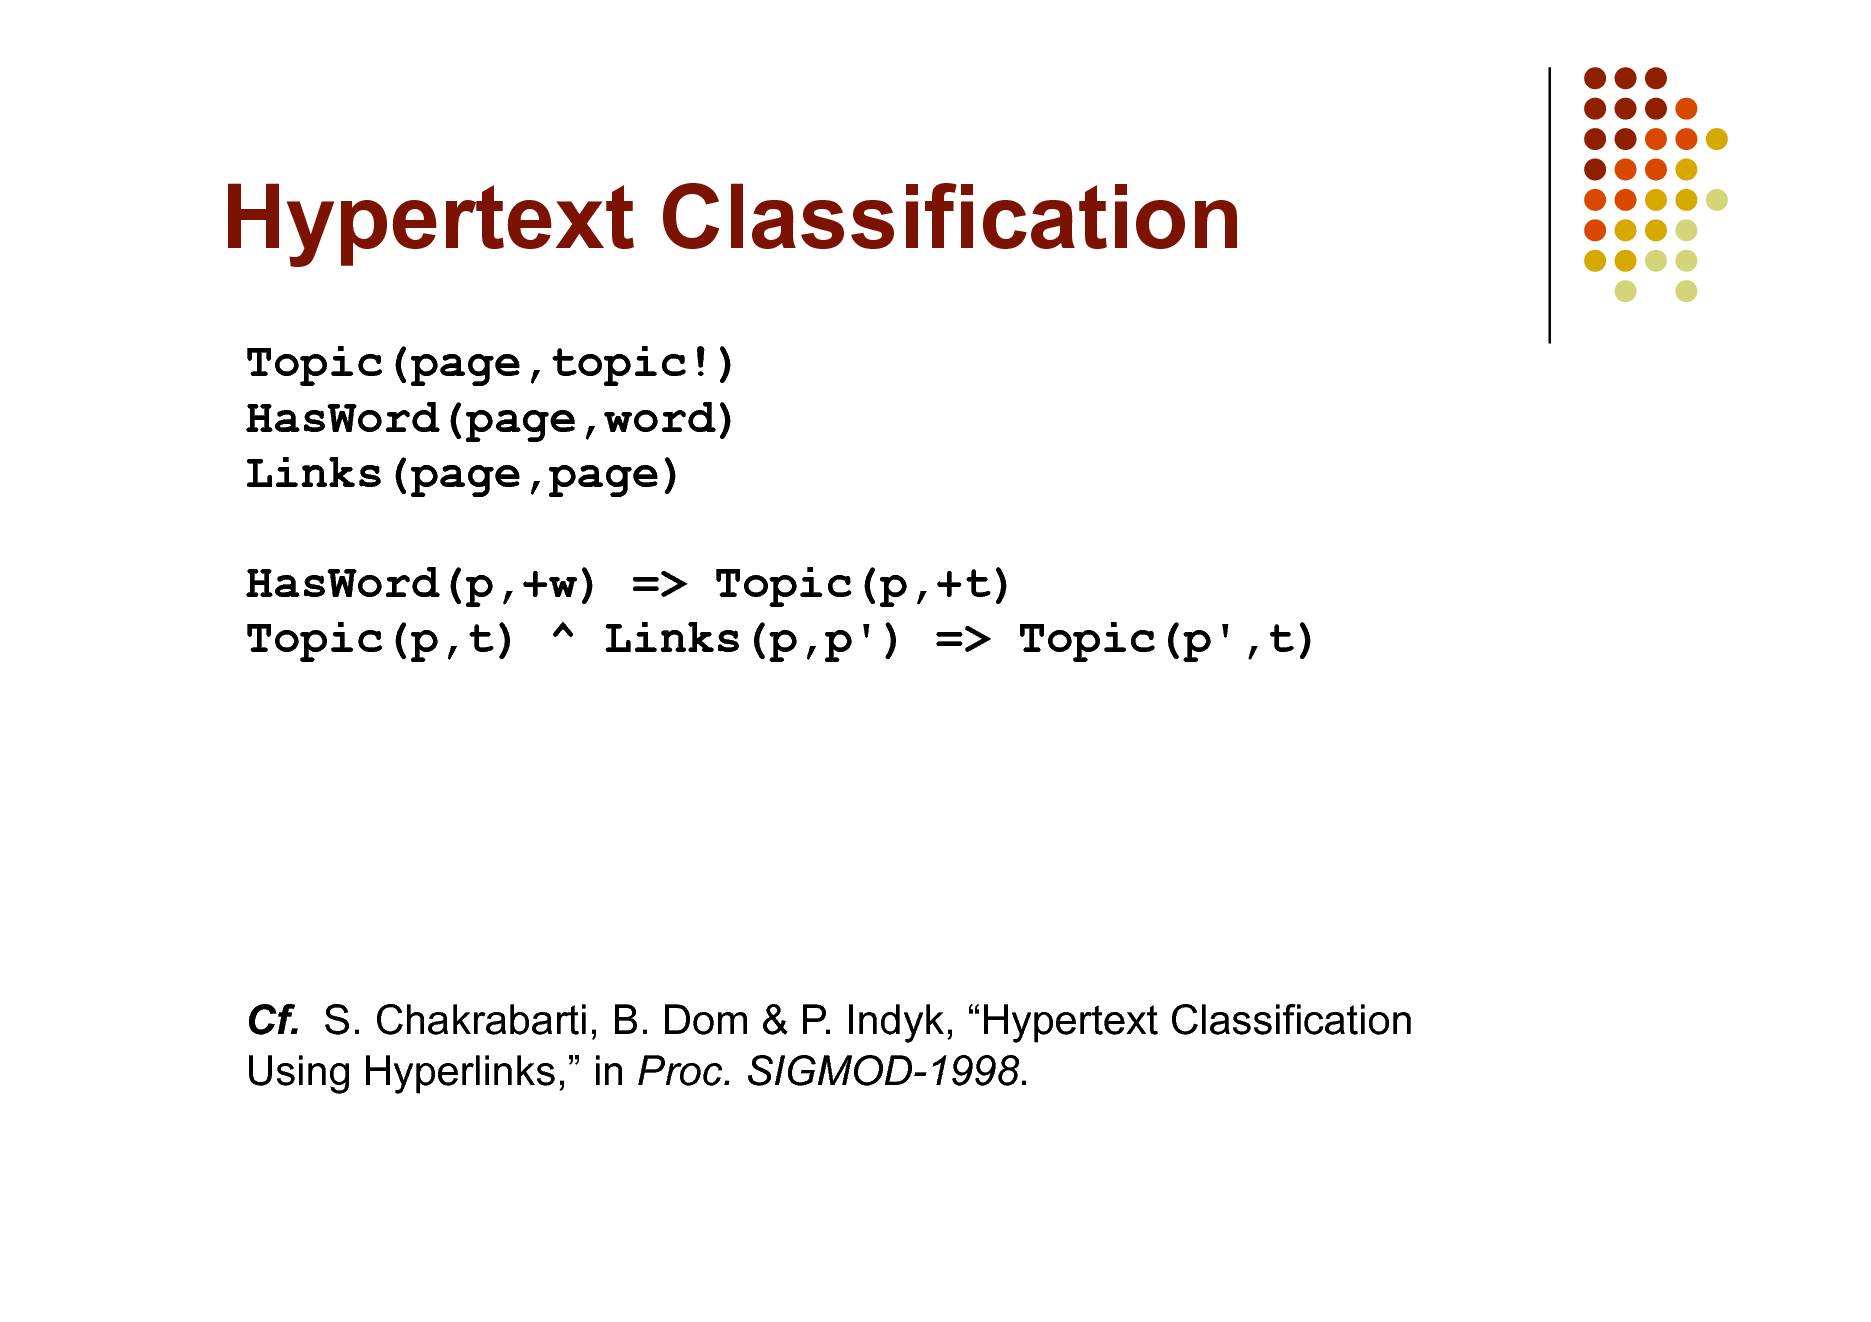 Slide: Hypertext Classification Topic(page,topic!) HasWord(page,word) Links(page,page) HasWord(p,+w) => Topic(p,+t) Topic(p,t) ^ Links(p,p') => Topic(p',t)  Cf. S. Chakrabarti, B. Dom & P. Indyk, Hypertext Classification Using Hyperlinks, in Proc. SIGMOD-1998.